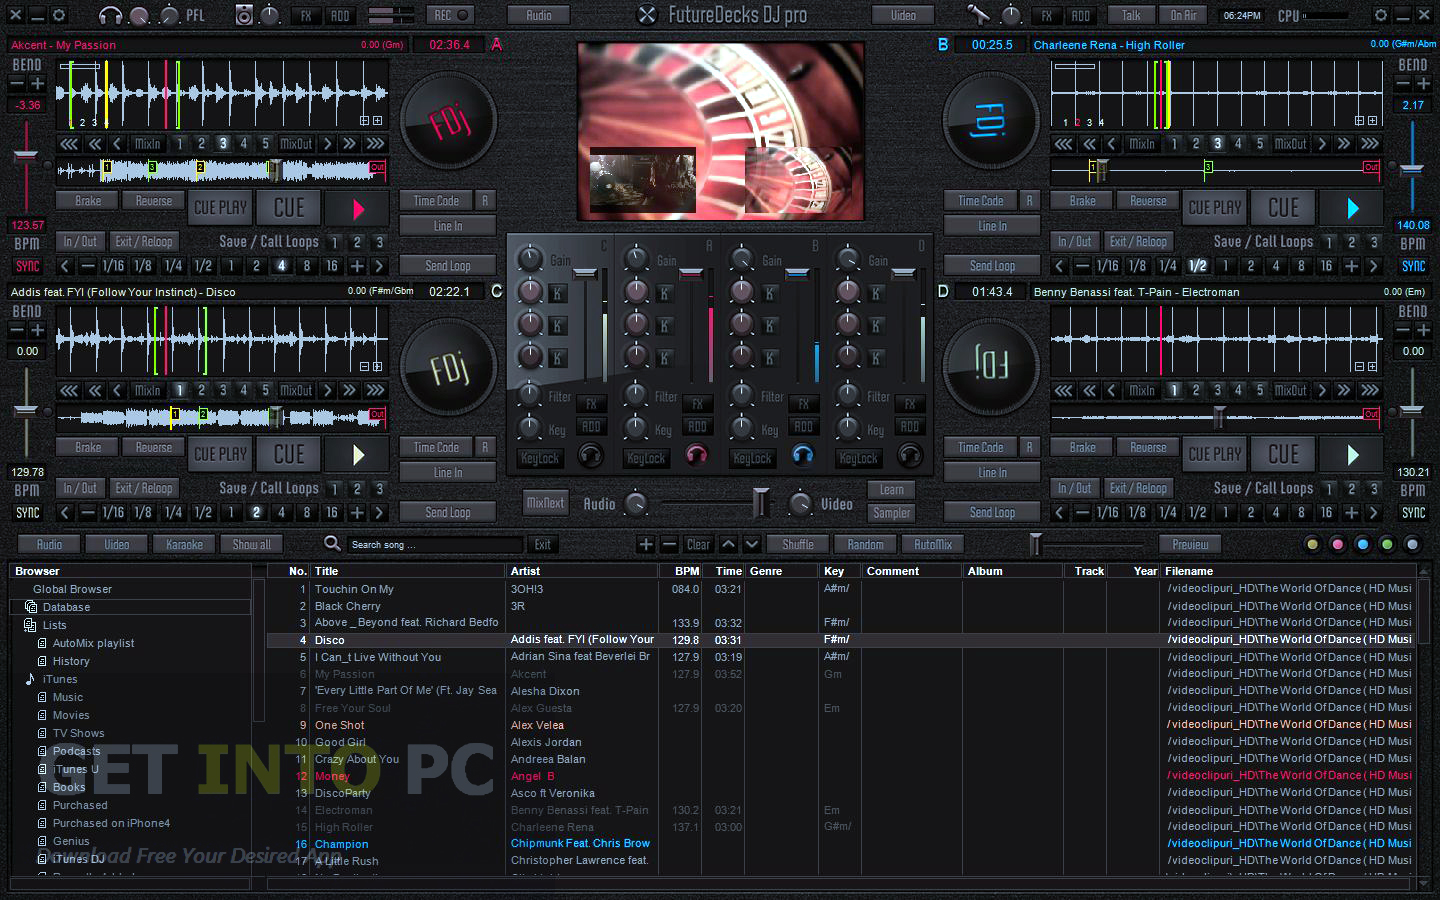 FutureDecks DJ Pro Setup Free Download